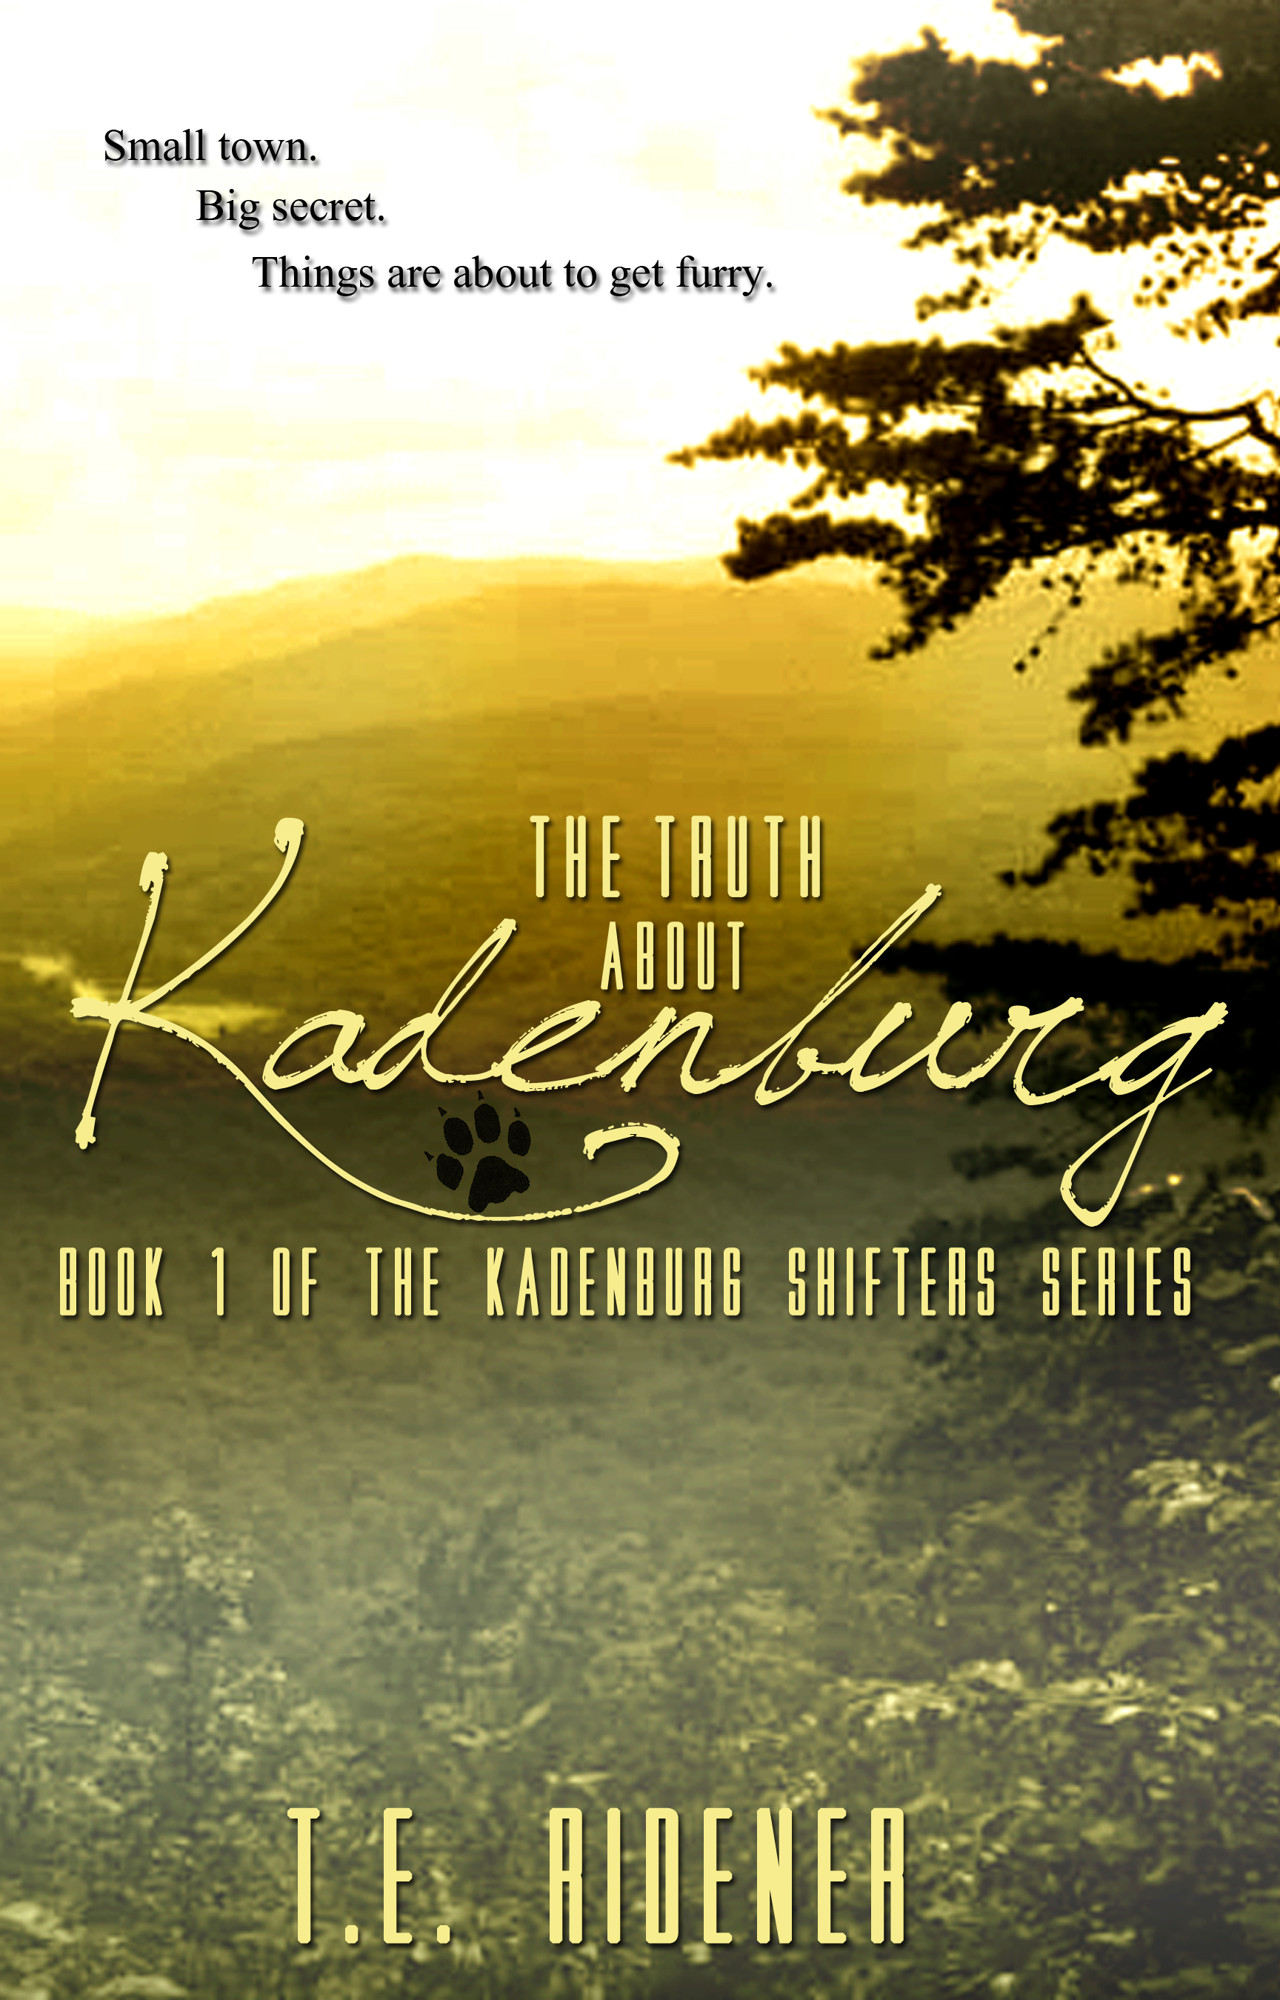 The Truth about Kadenburg